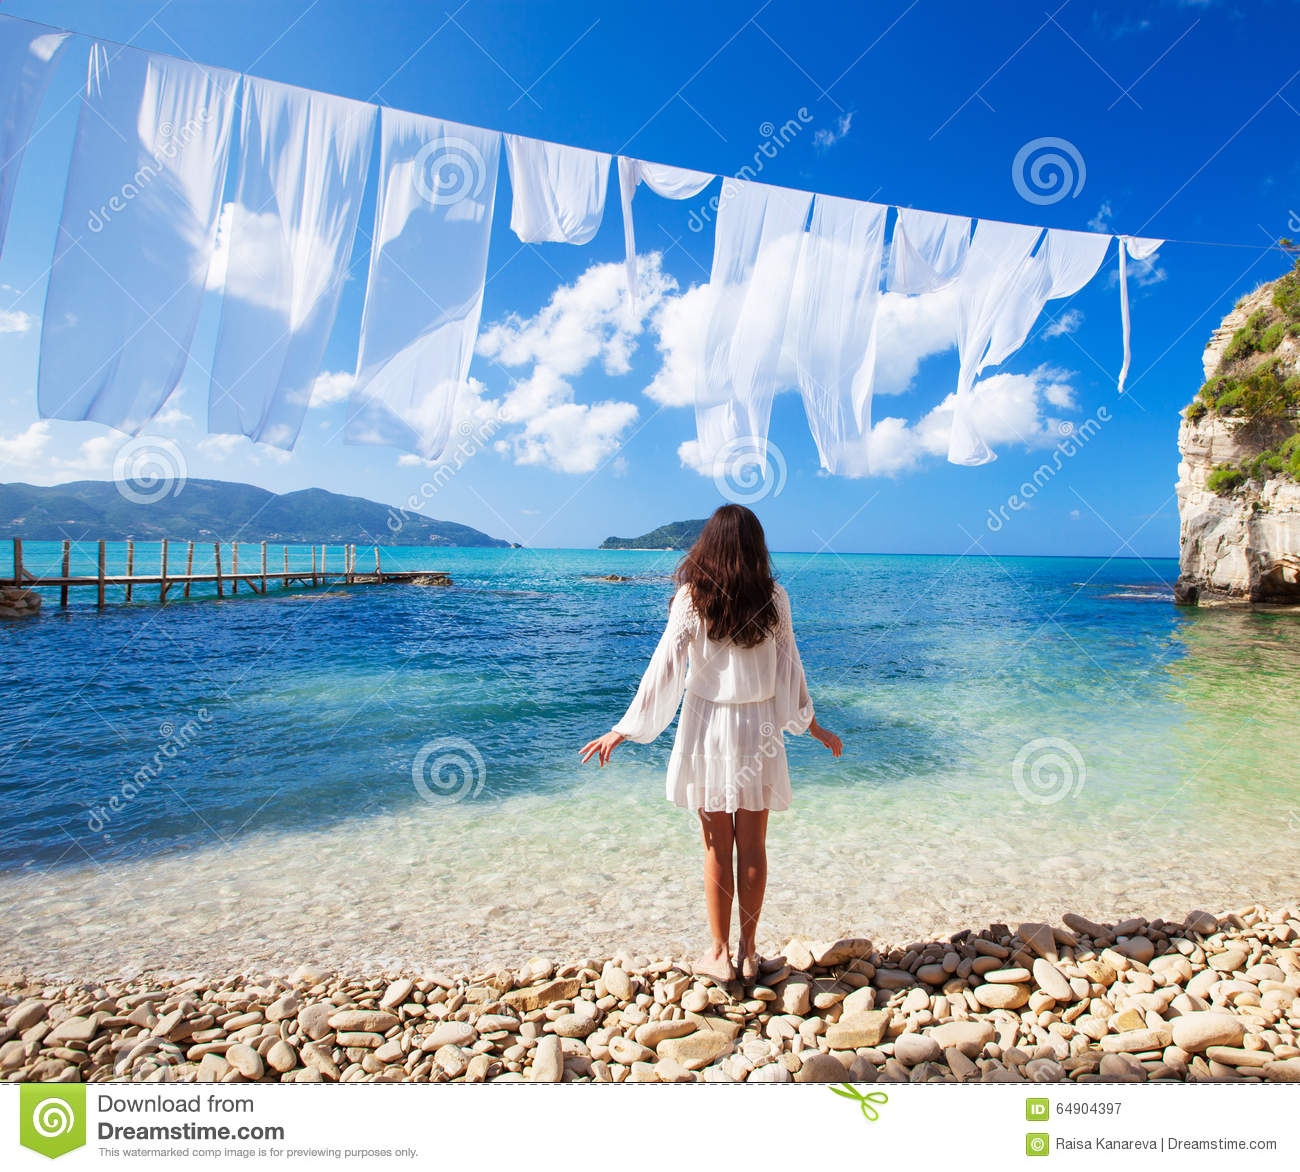 Woman Enjoying At Beach Stock Image Image Of Pleasure: Woman In White Dress Standing On Beach Stock Image